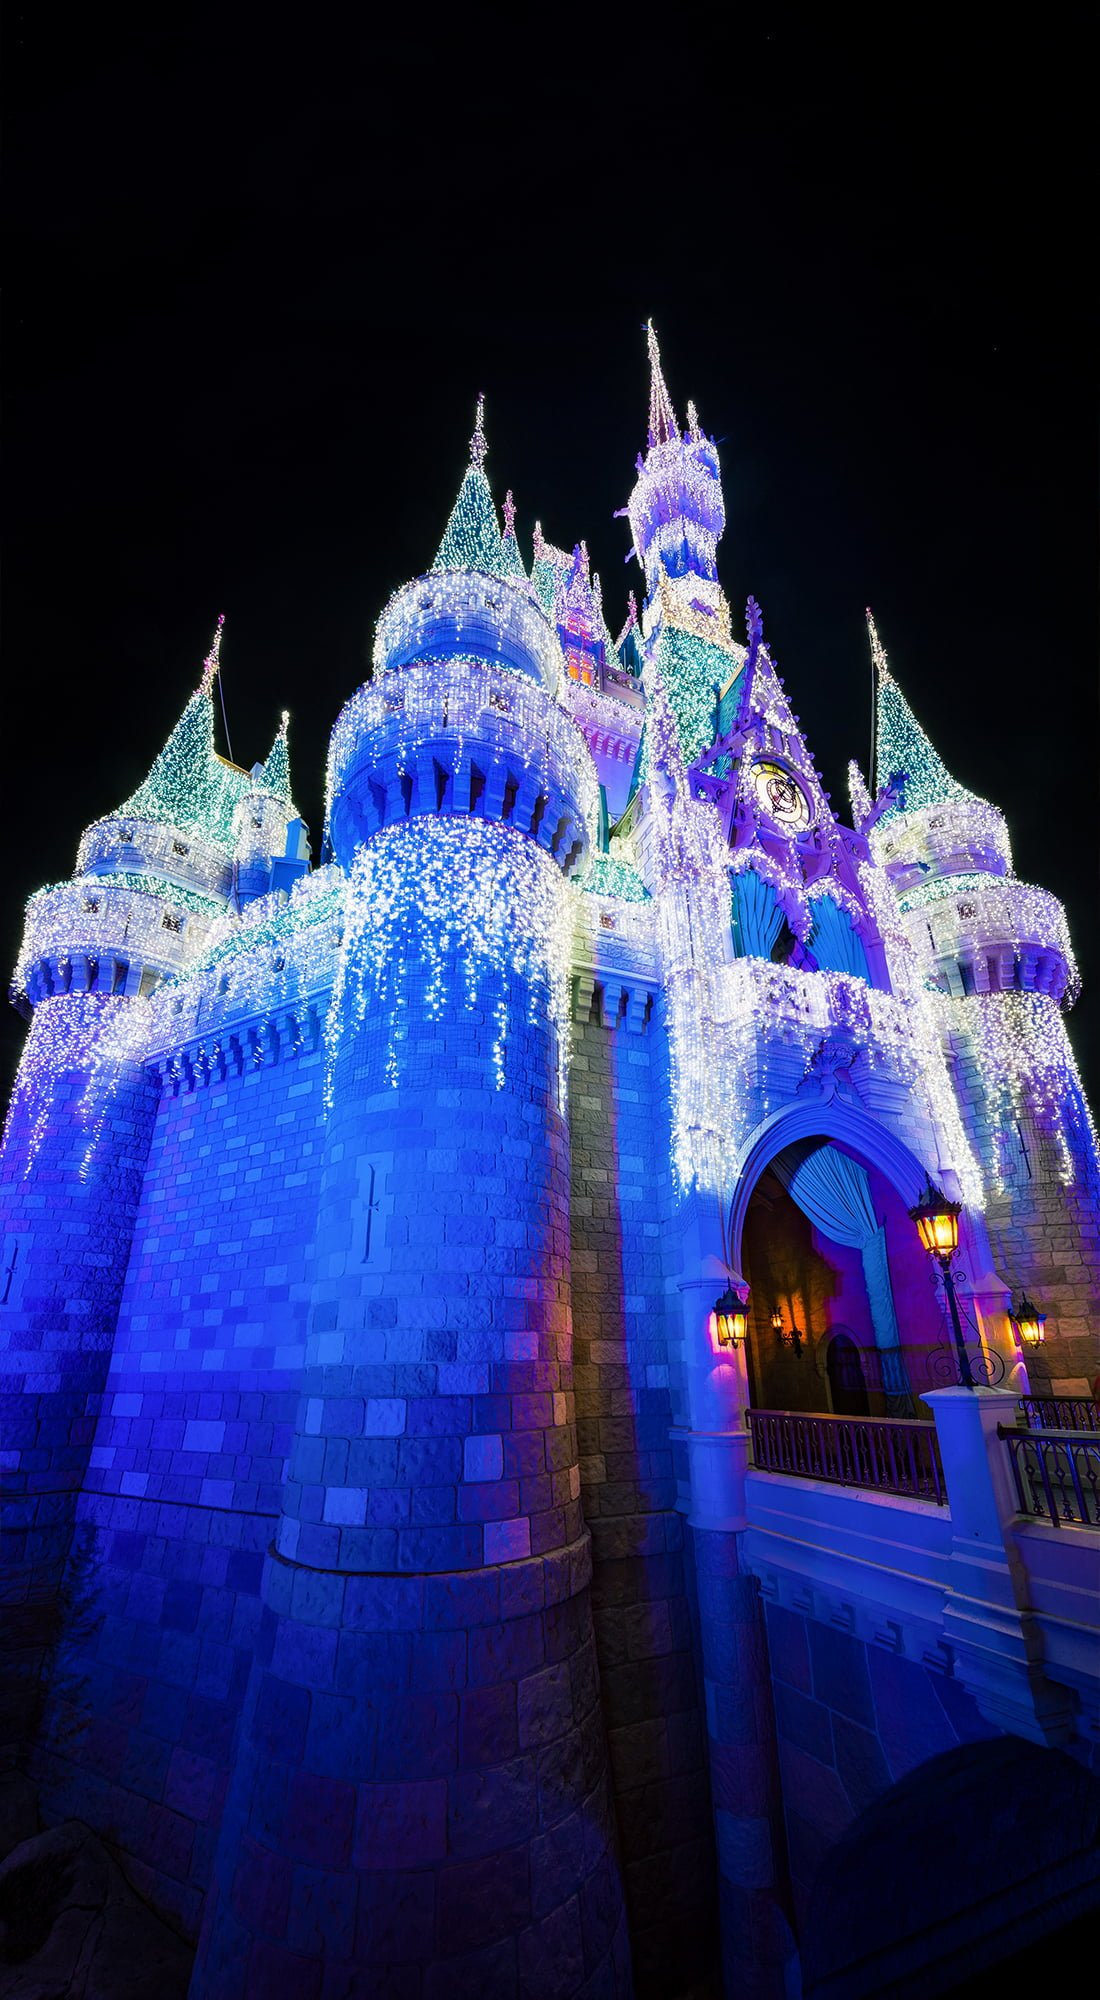 Cinderella Castle Dreamlights Christmas Disney World Phone Wallpaper